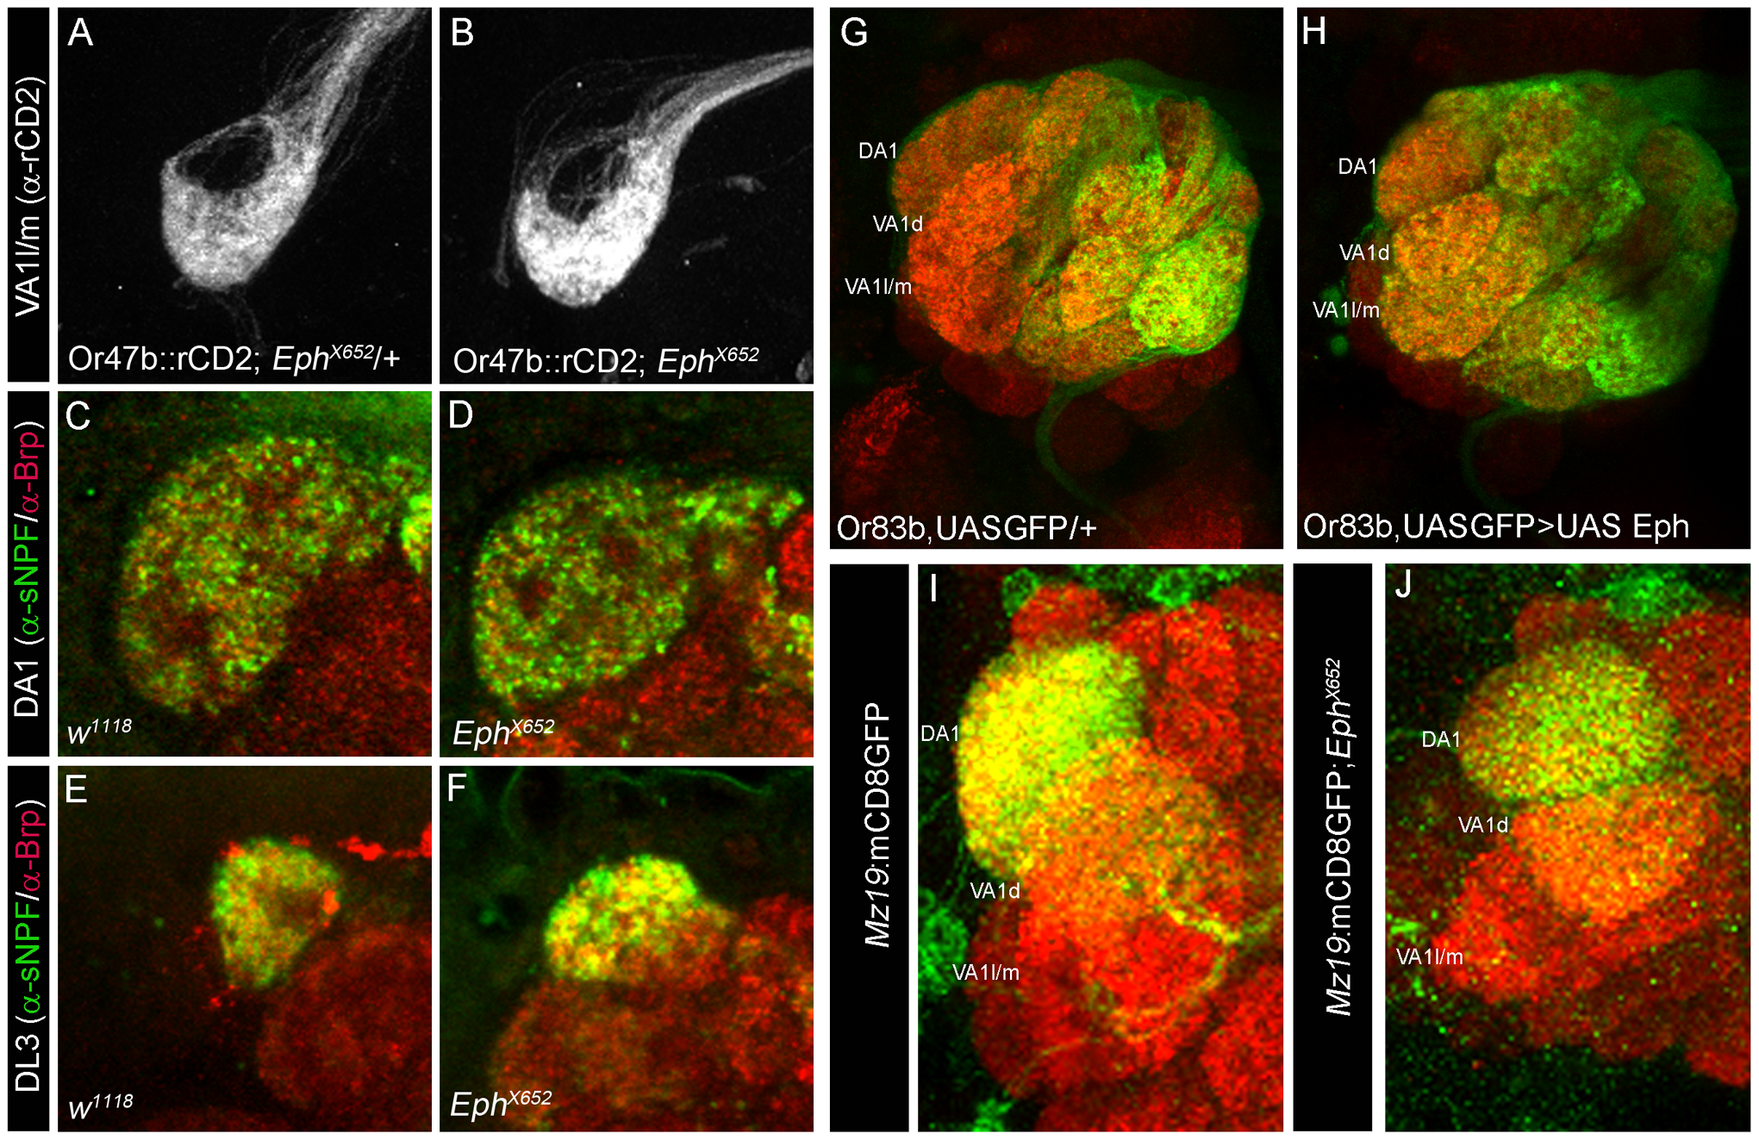 Eph function is not required for appropriate targeting of OSNs and uniglomerular PNs.